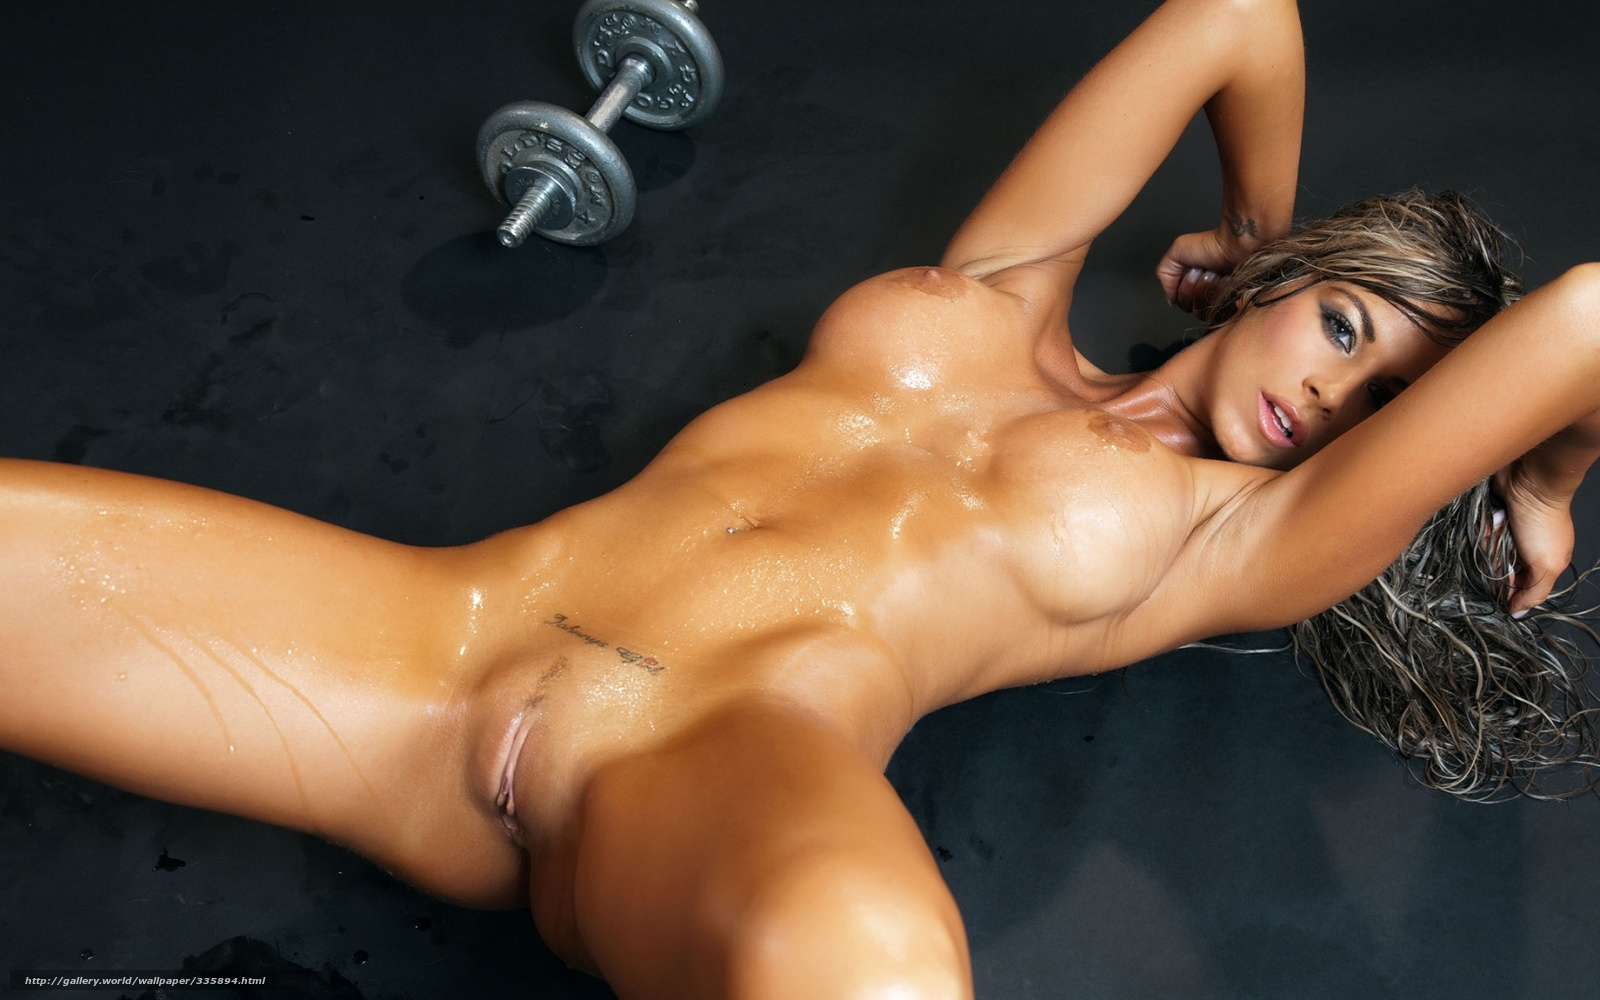 Dirty nude girl wallpaper sexy streaming